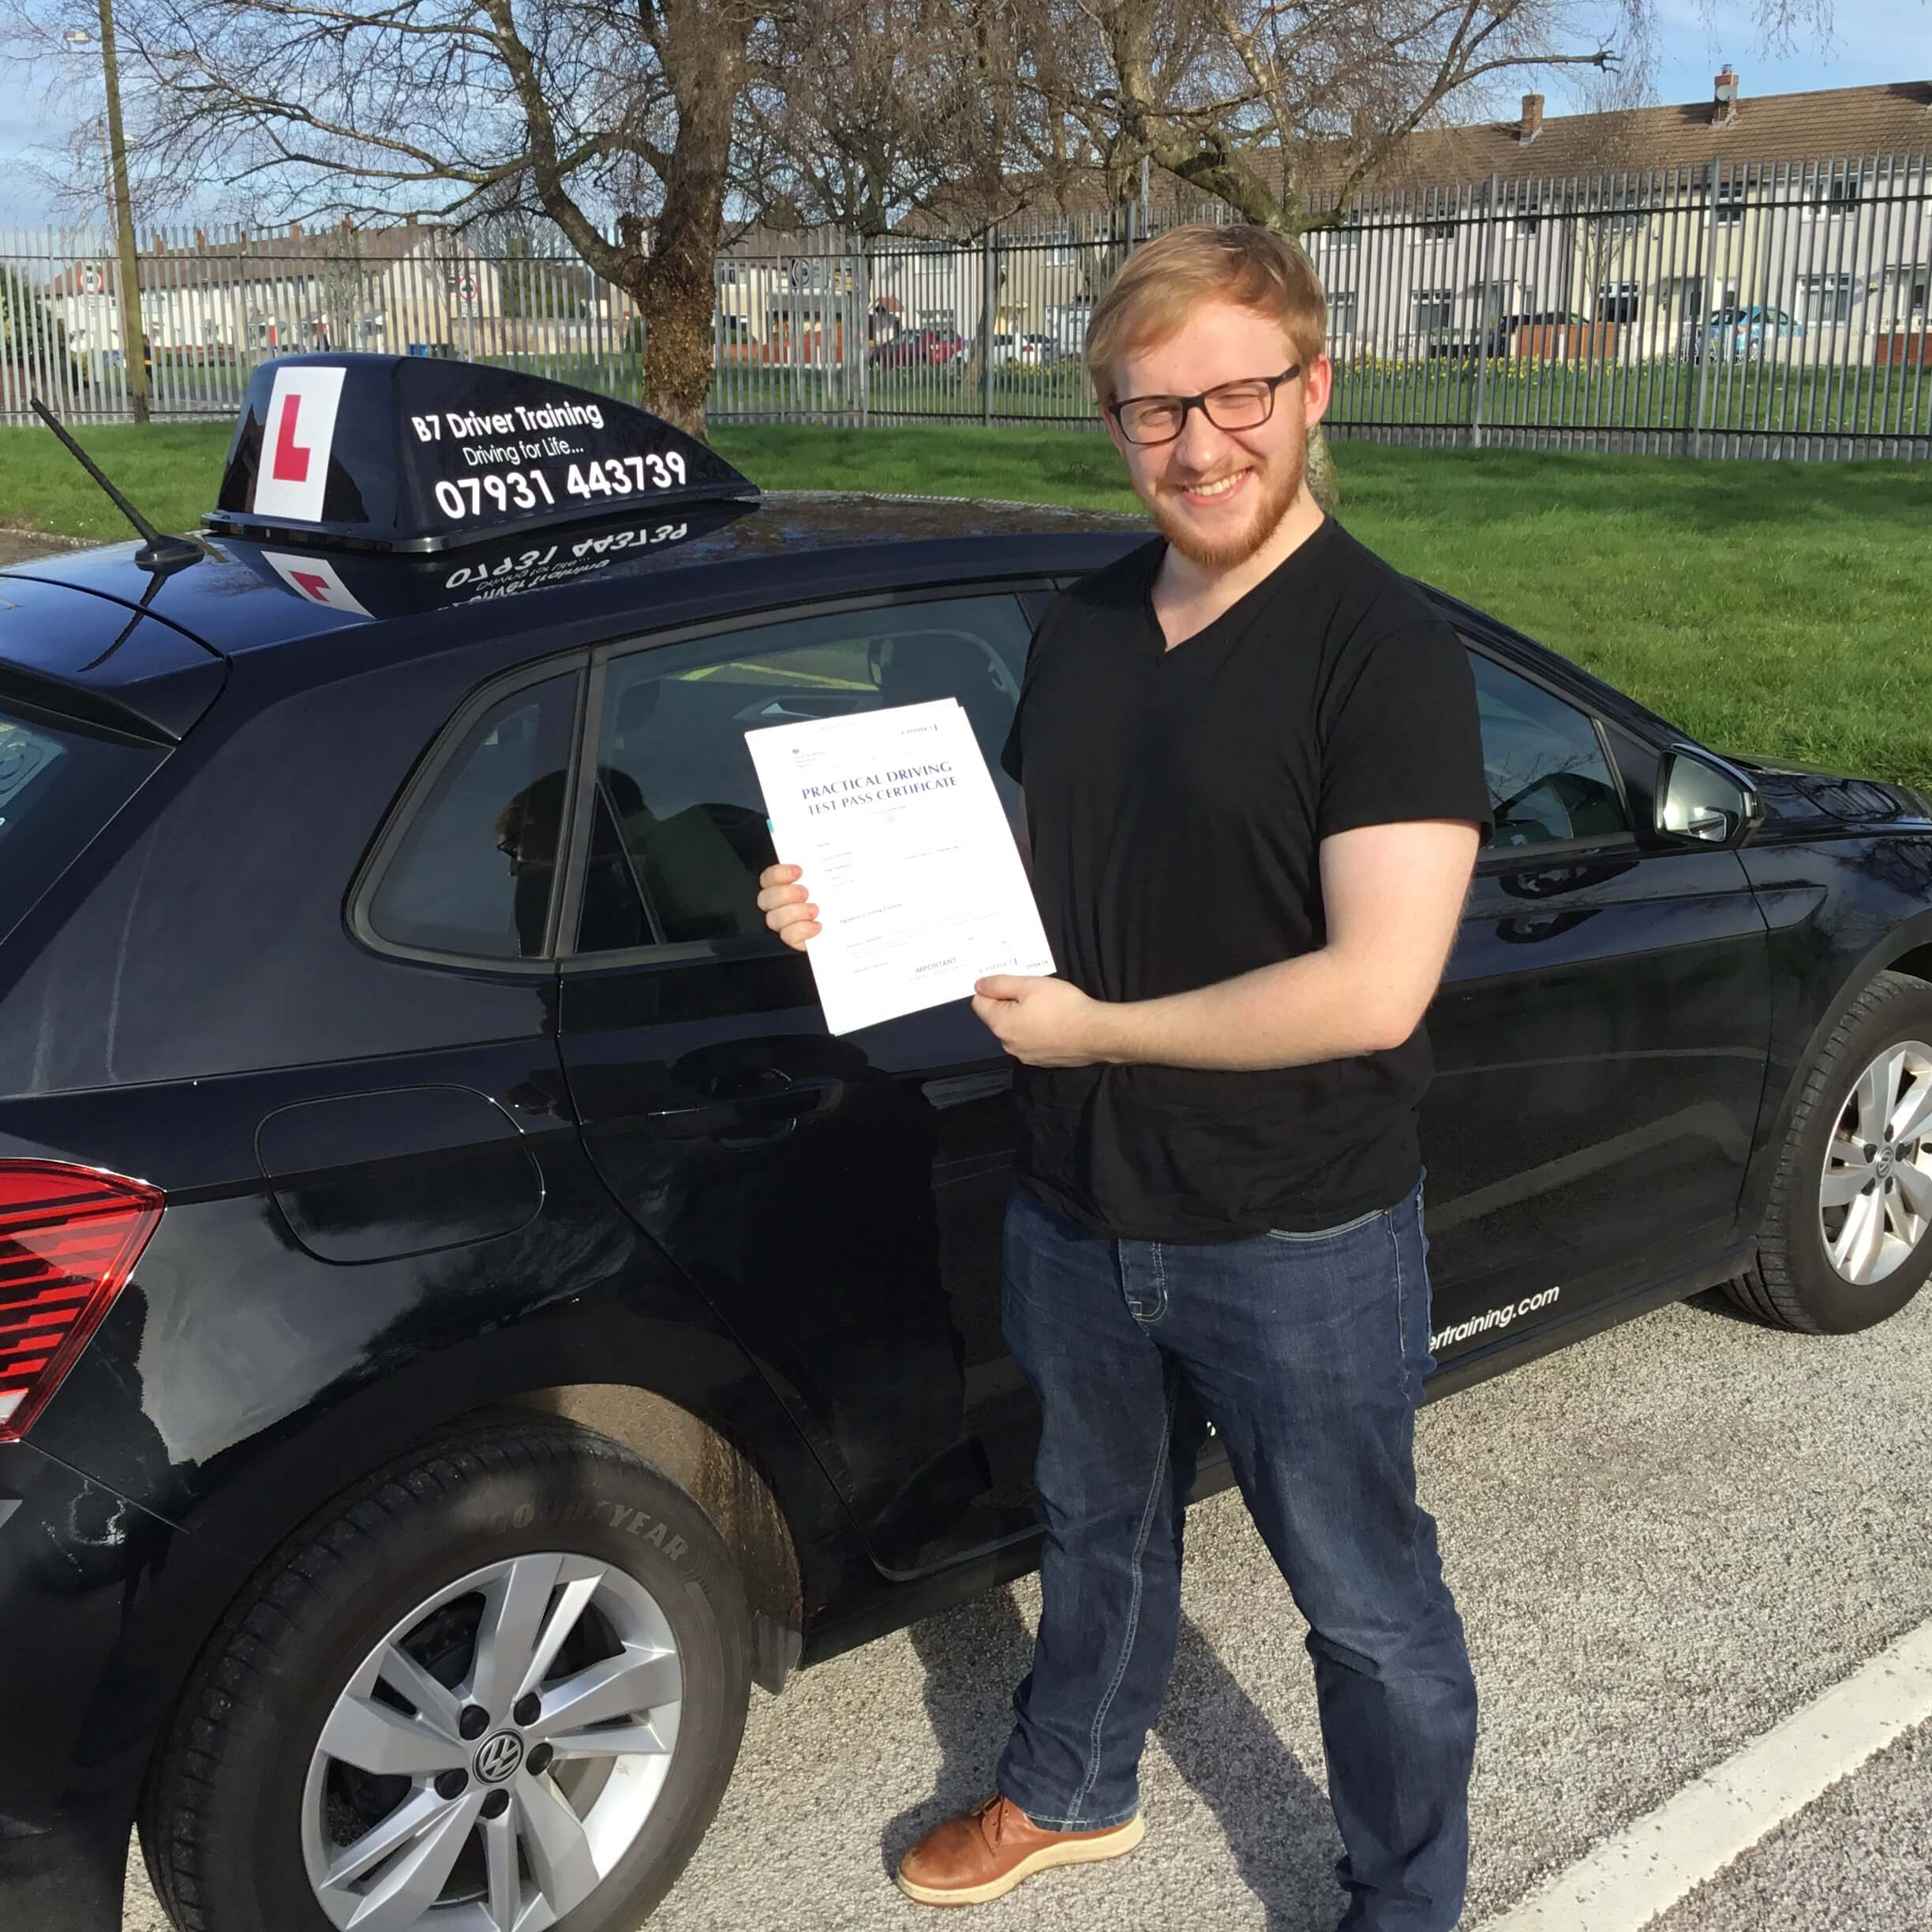 1st time driving test pass @Widnes test centre